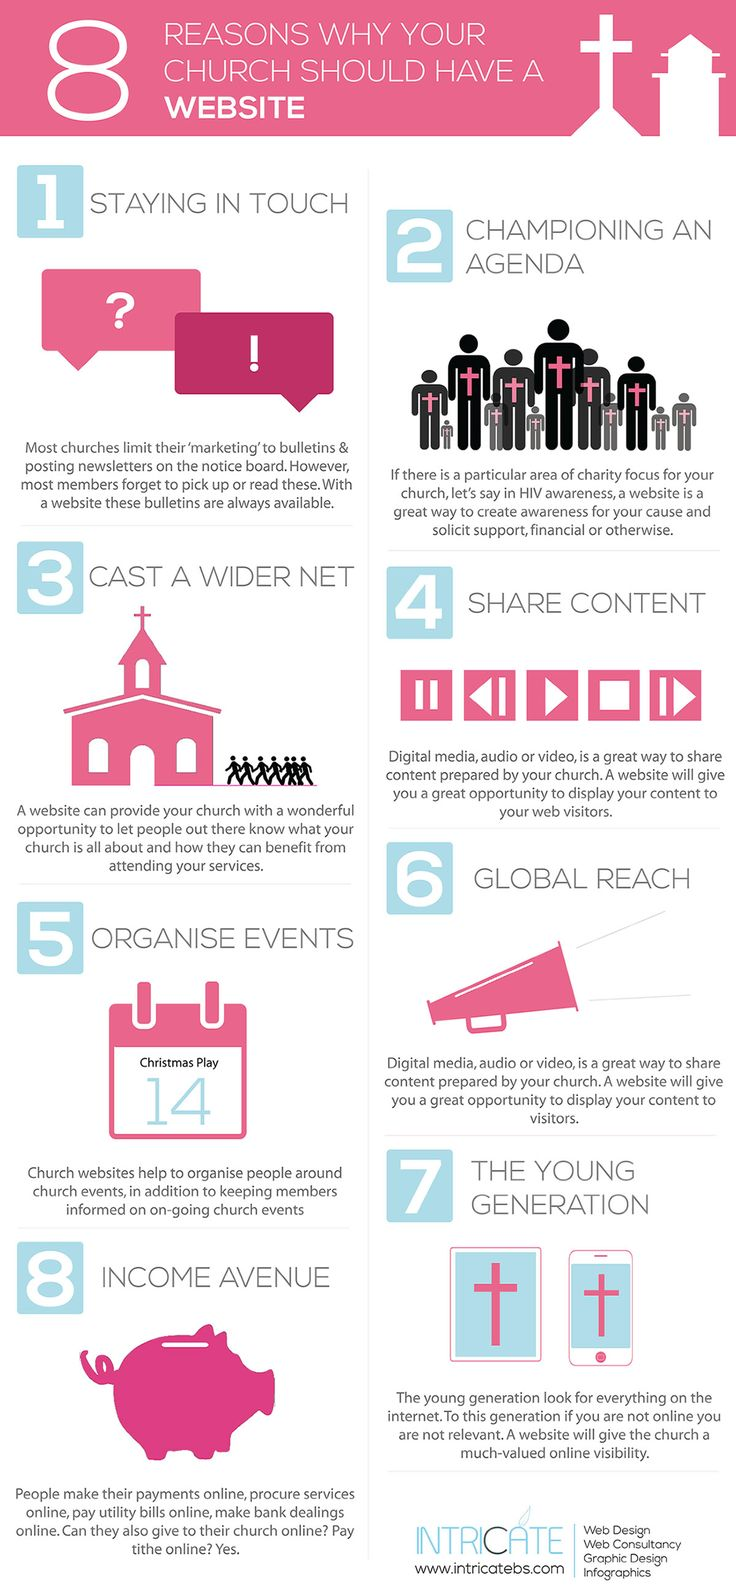 An marketing infographic. This infographic shows 8 reasons why churches need websites and should start embracing technology.